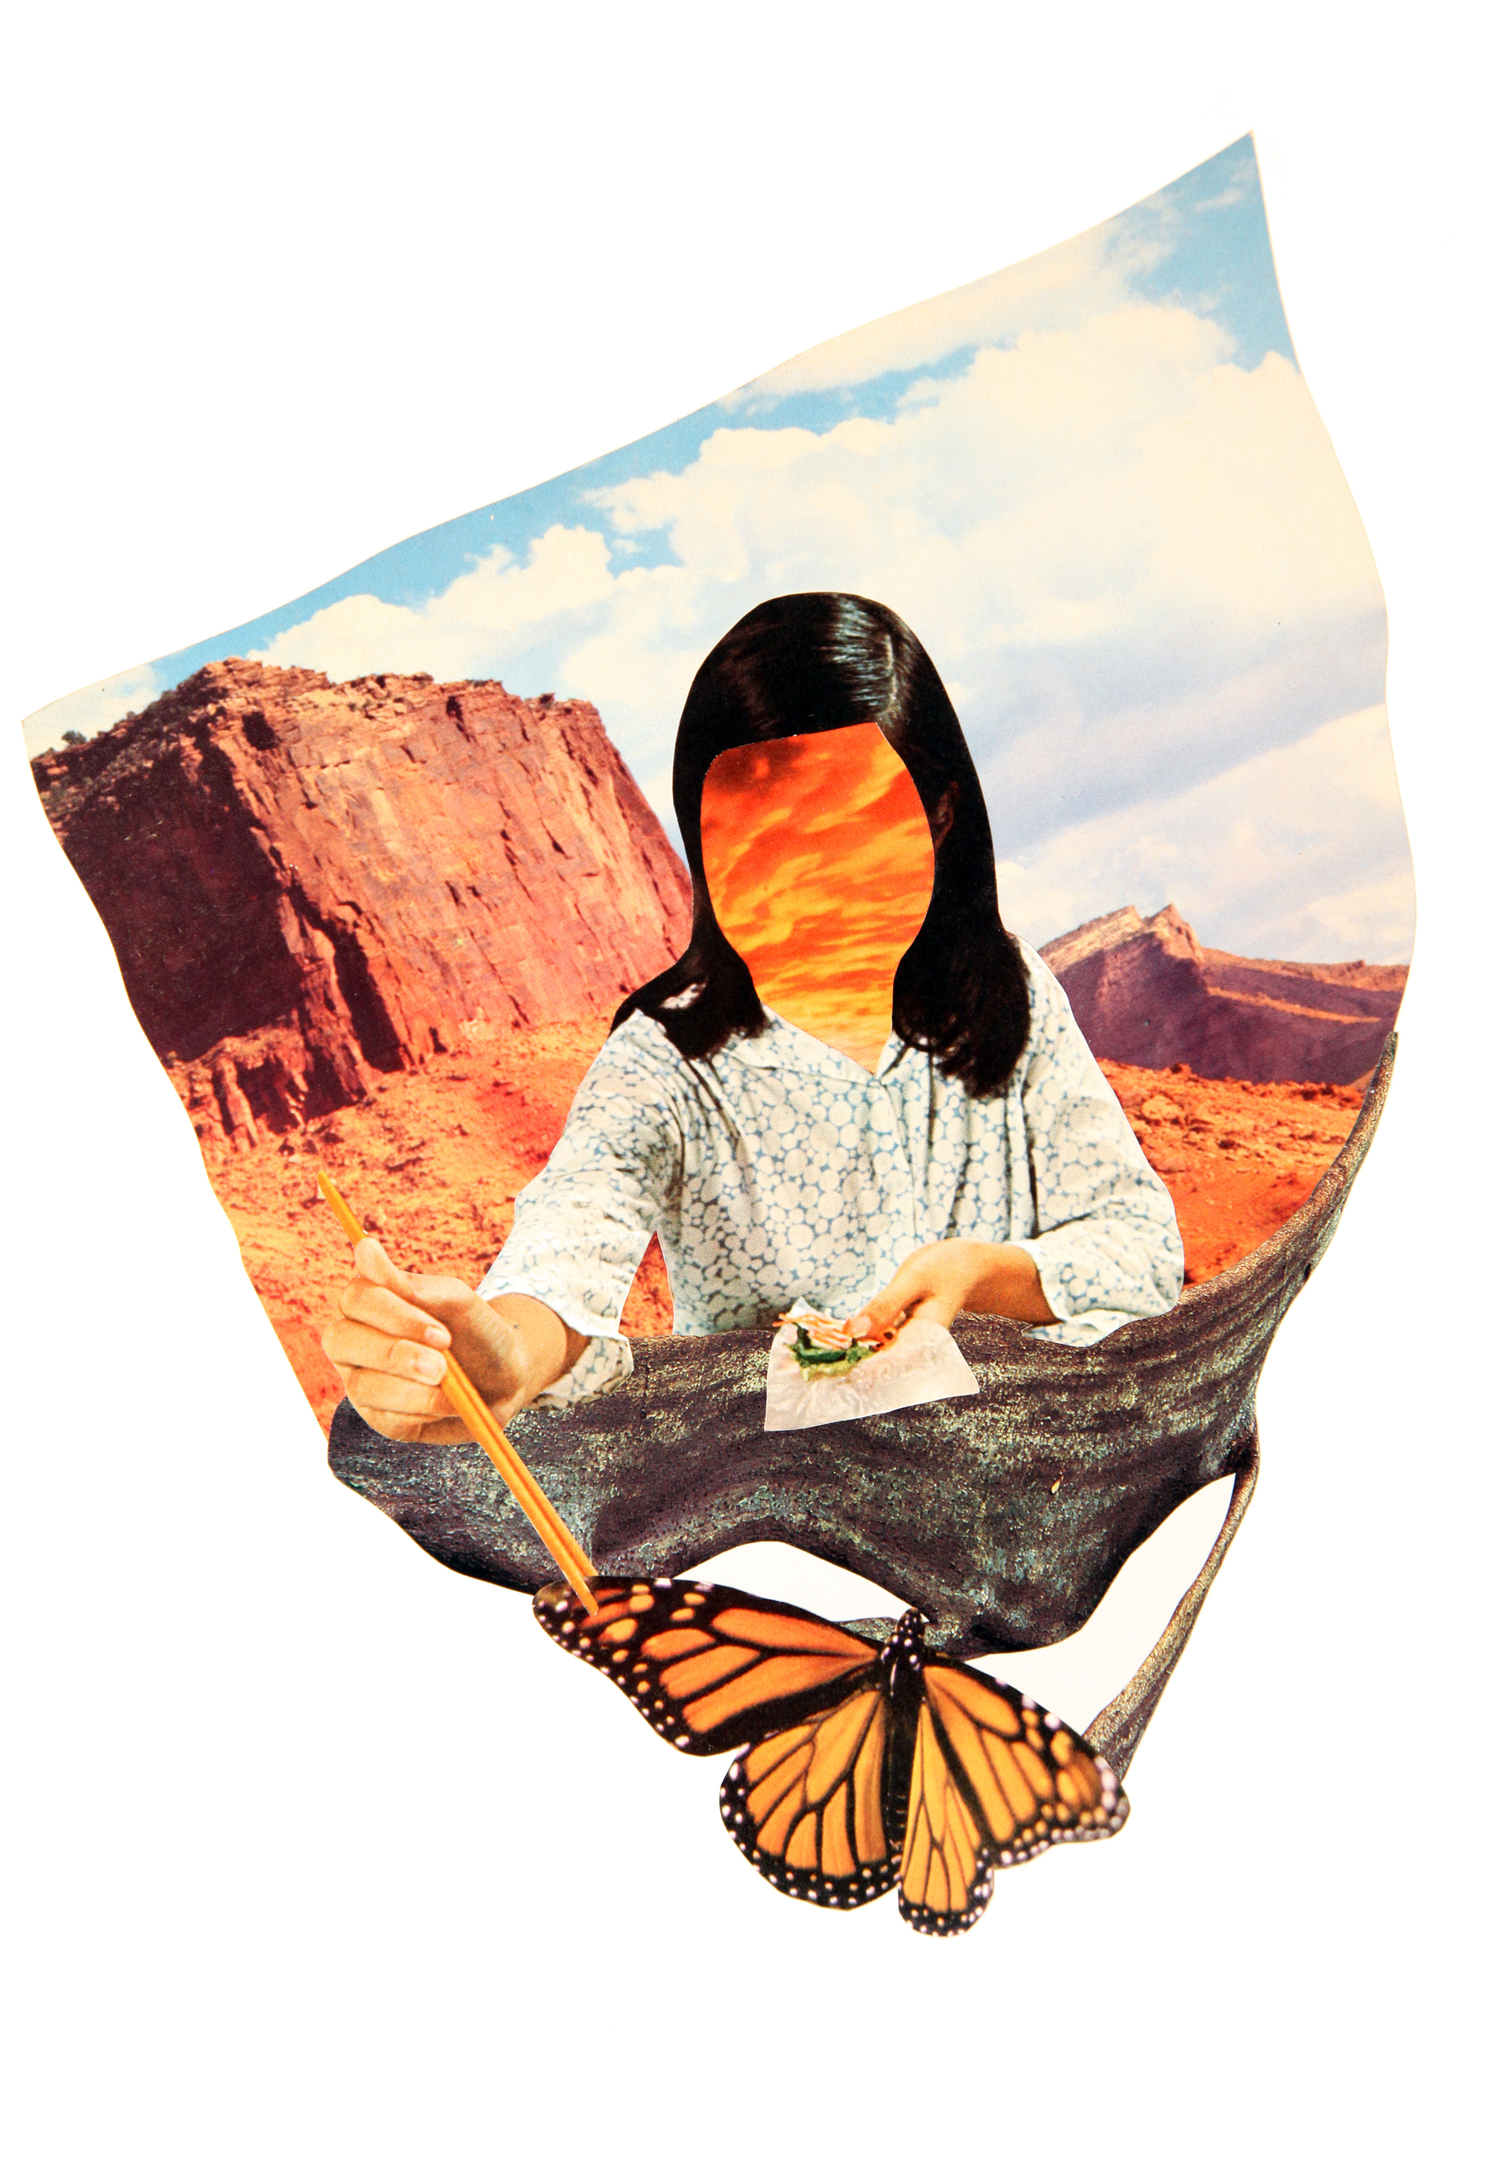 """Over The Canyon, Behind The Pain. That's Where We'll Find Our Way Home   11"""" x 15"""" Hand Cut Paper Collage on Vellum Paper"""